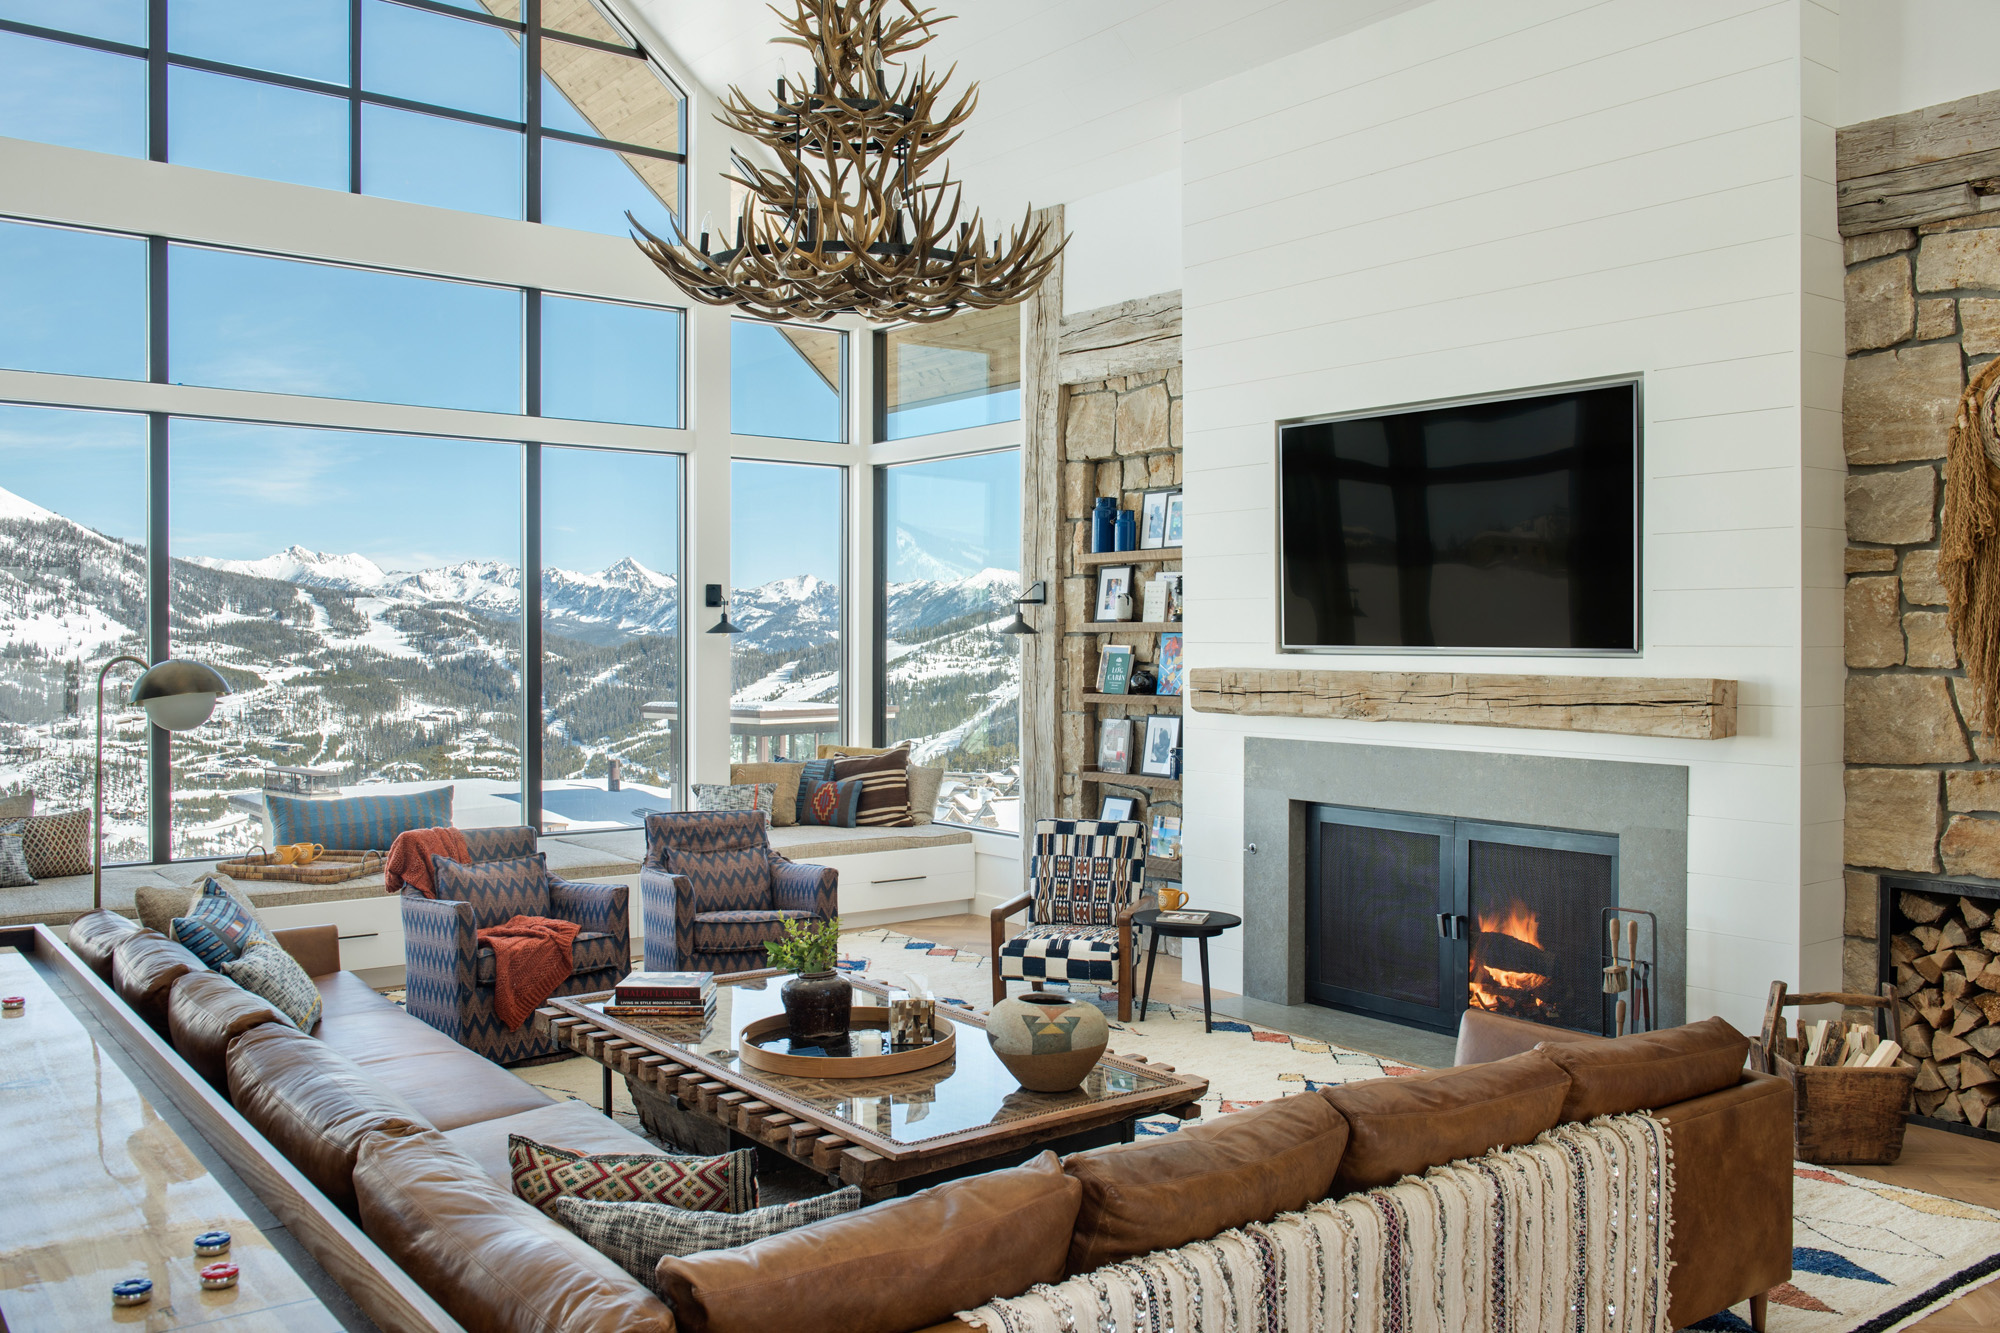 Ski Chalet Interior Design ski chalet mountain mama project by cashmere interior